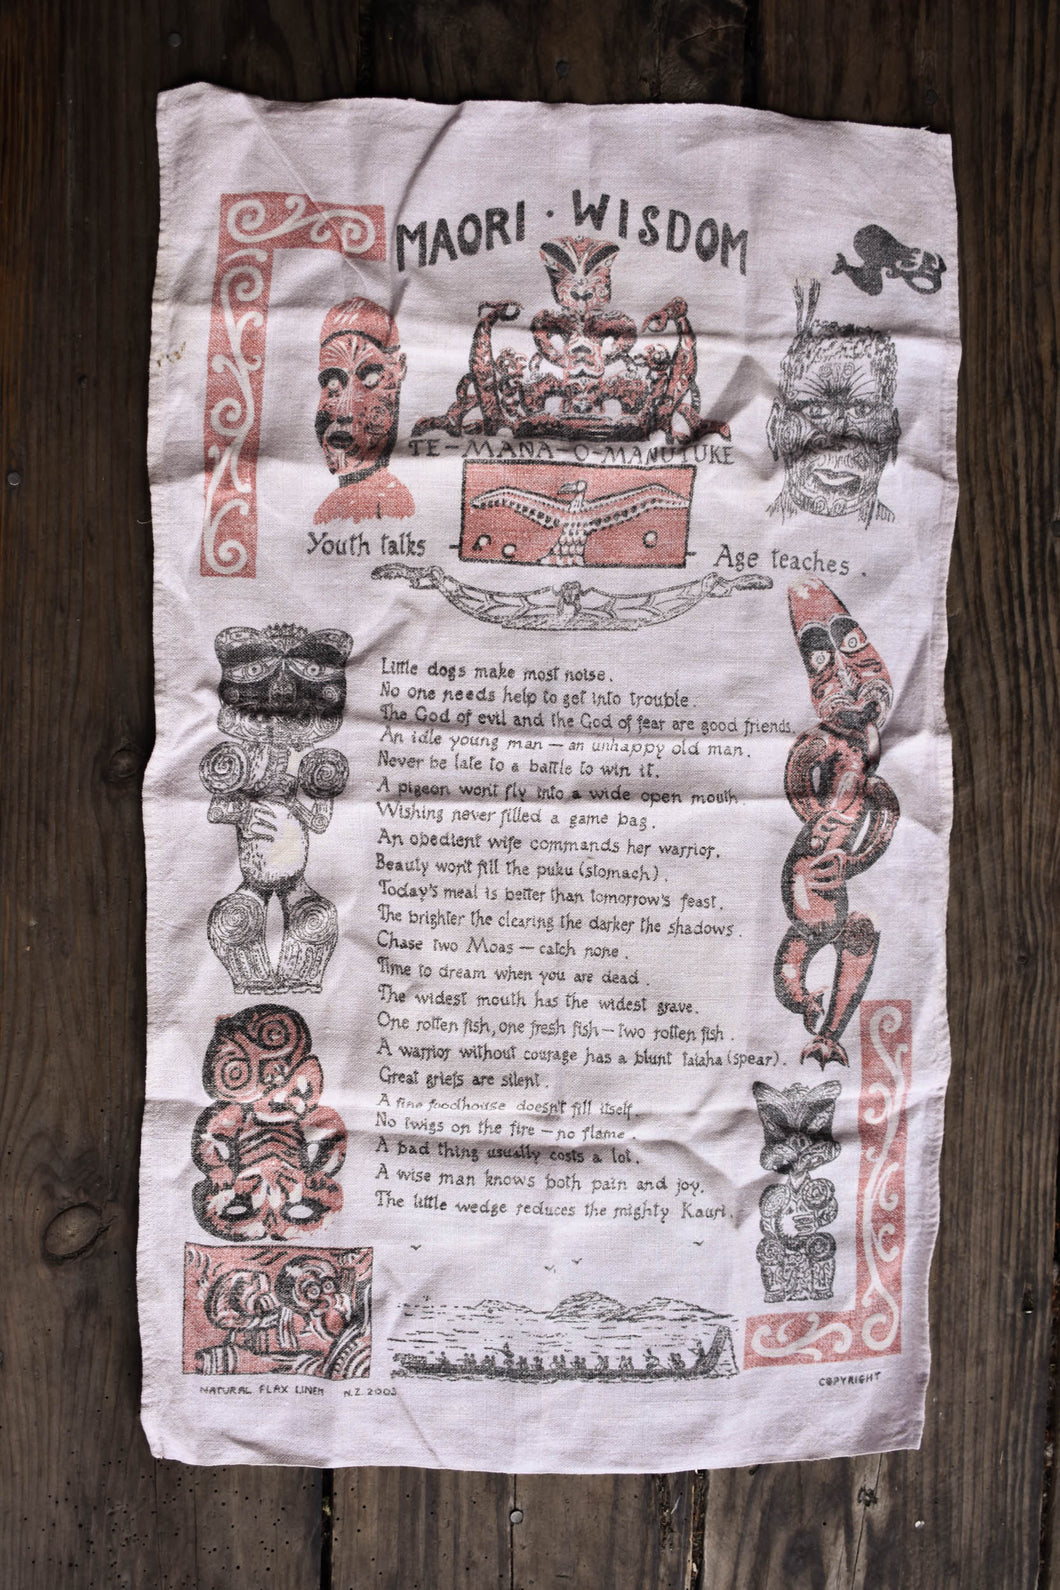 Retro Māori wisdom tea towel